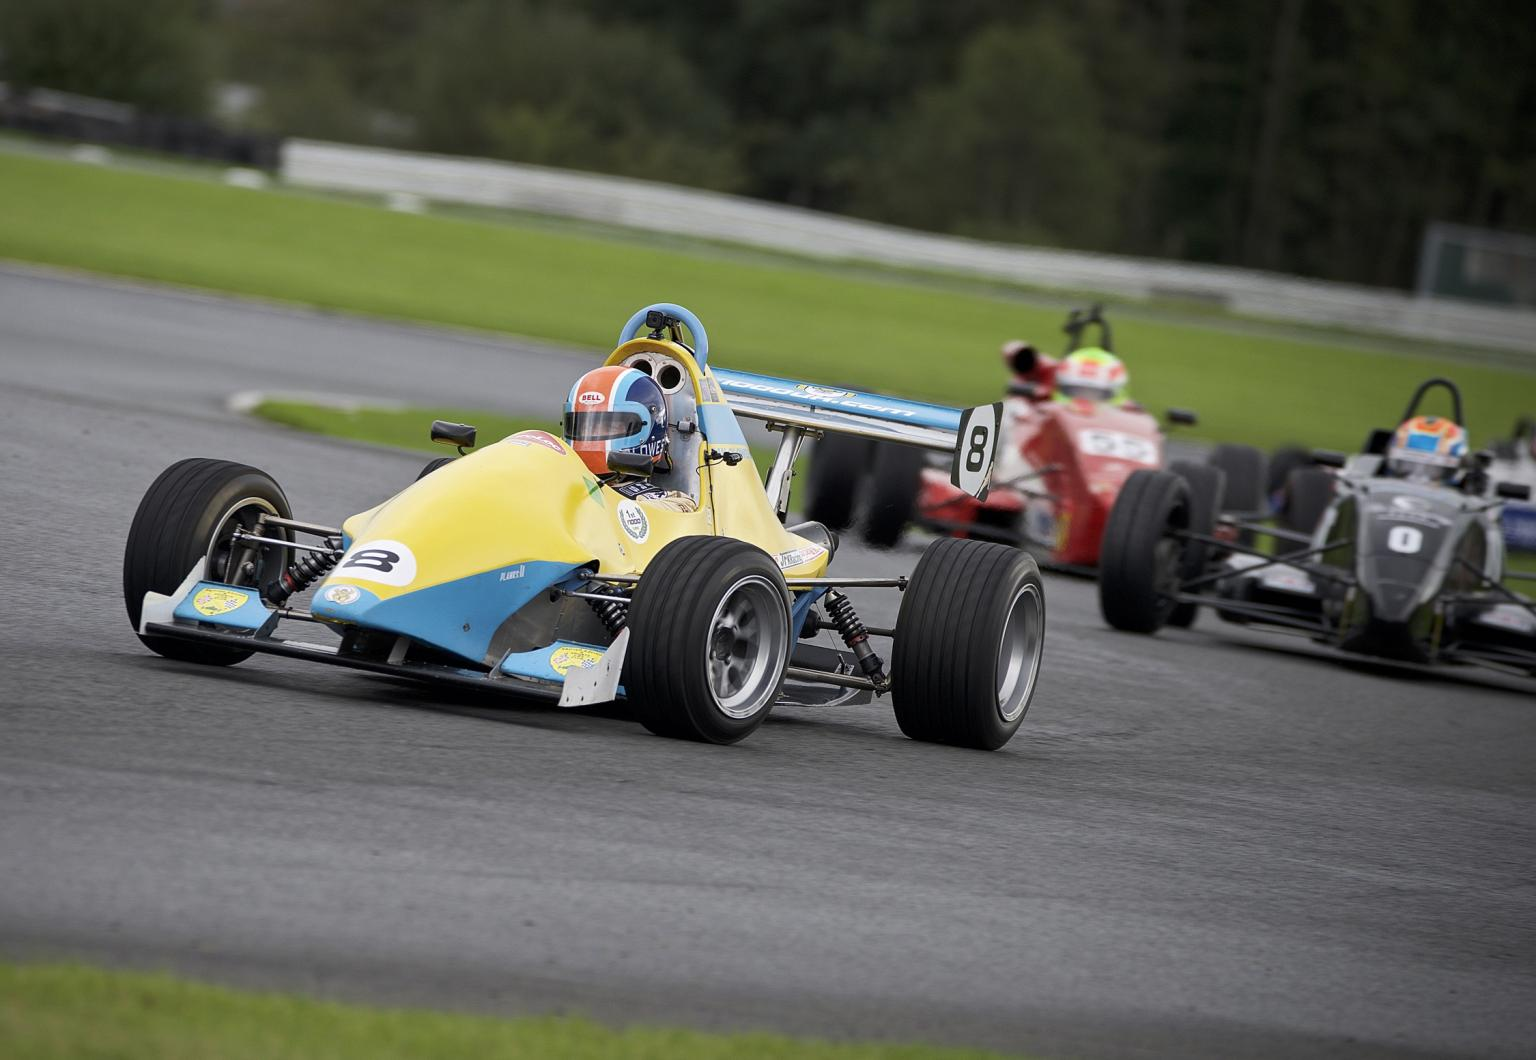 Jedi F1000s in action with innovative Lee Spring components